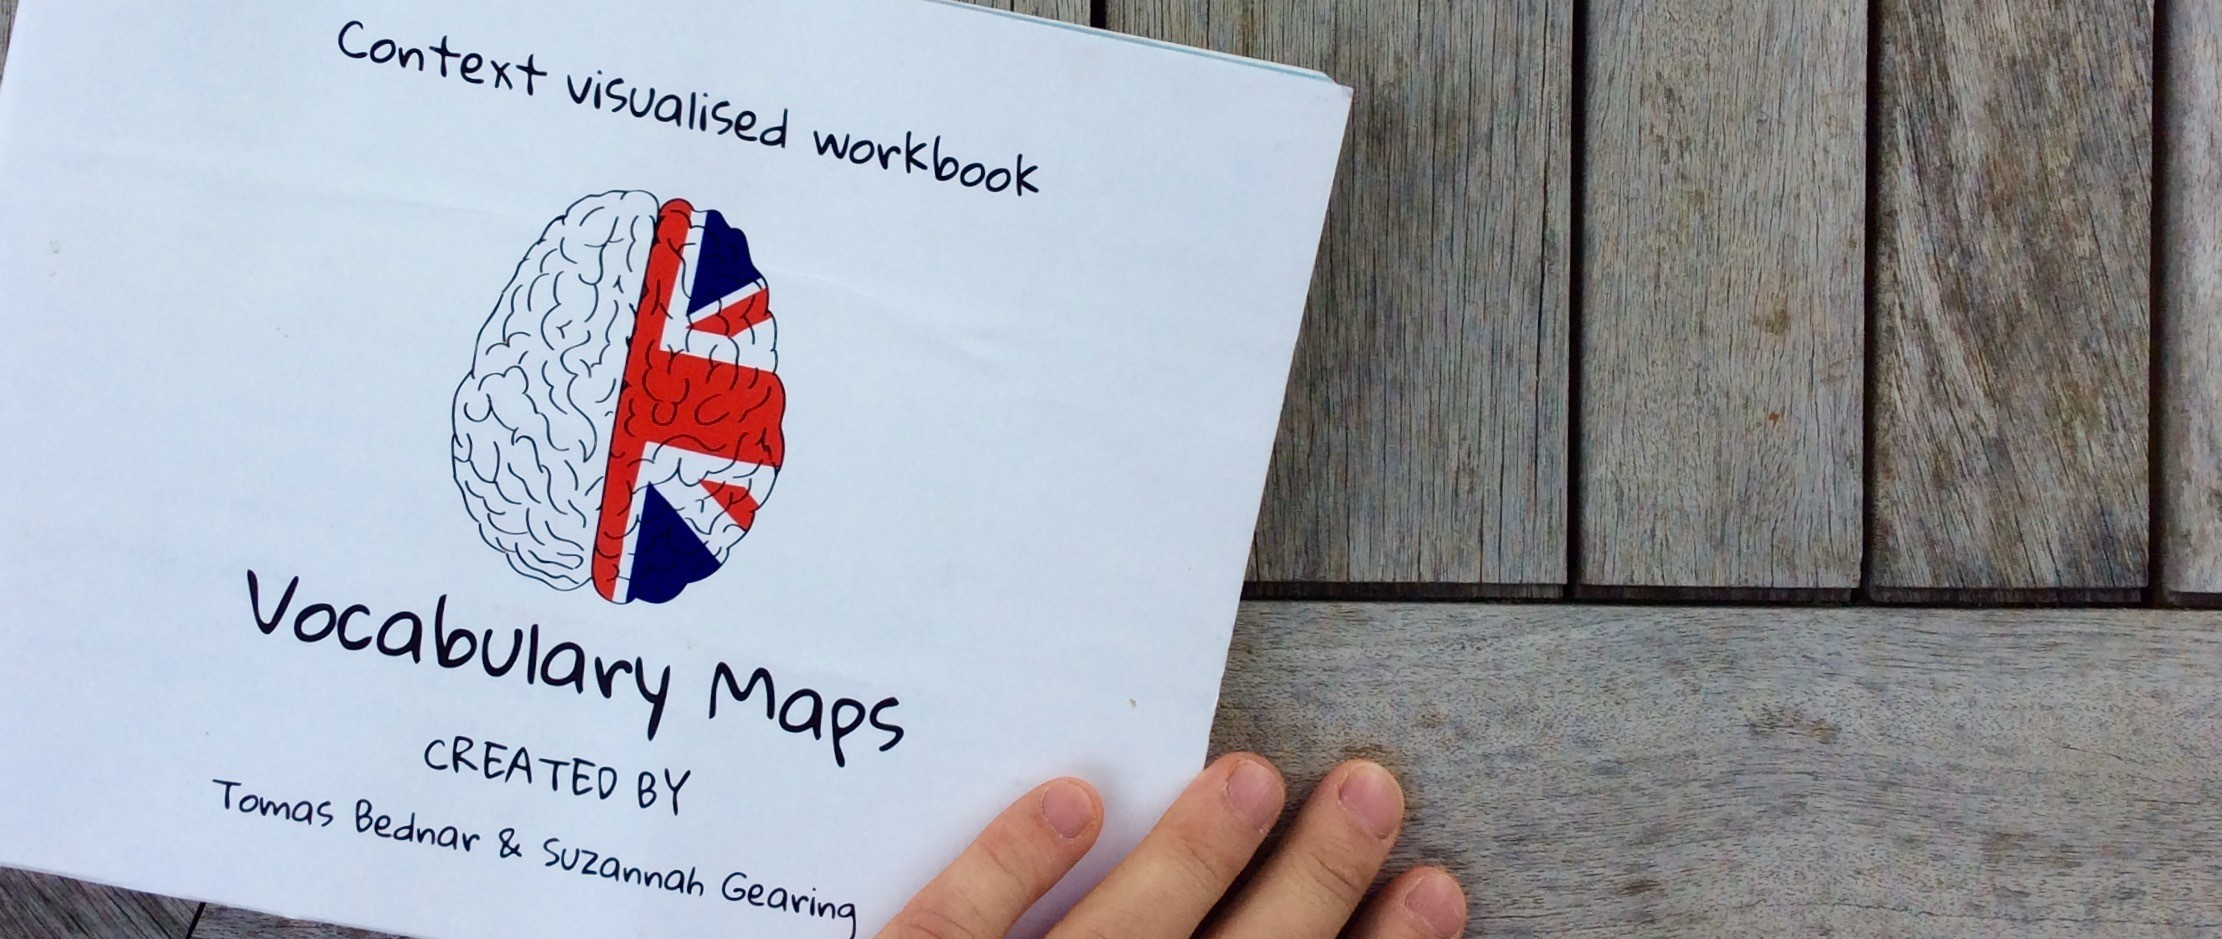 Vocabulary Maps: The Best Textbook for Visual Learners